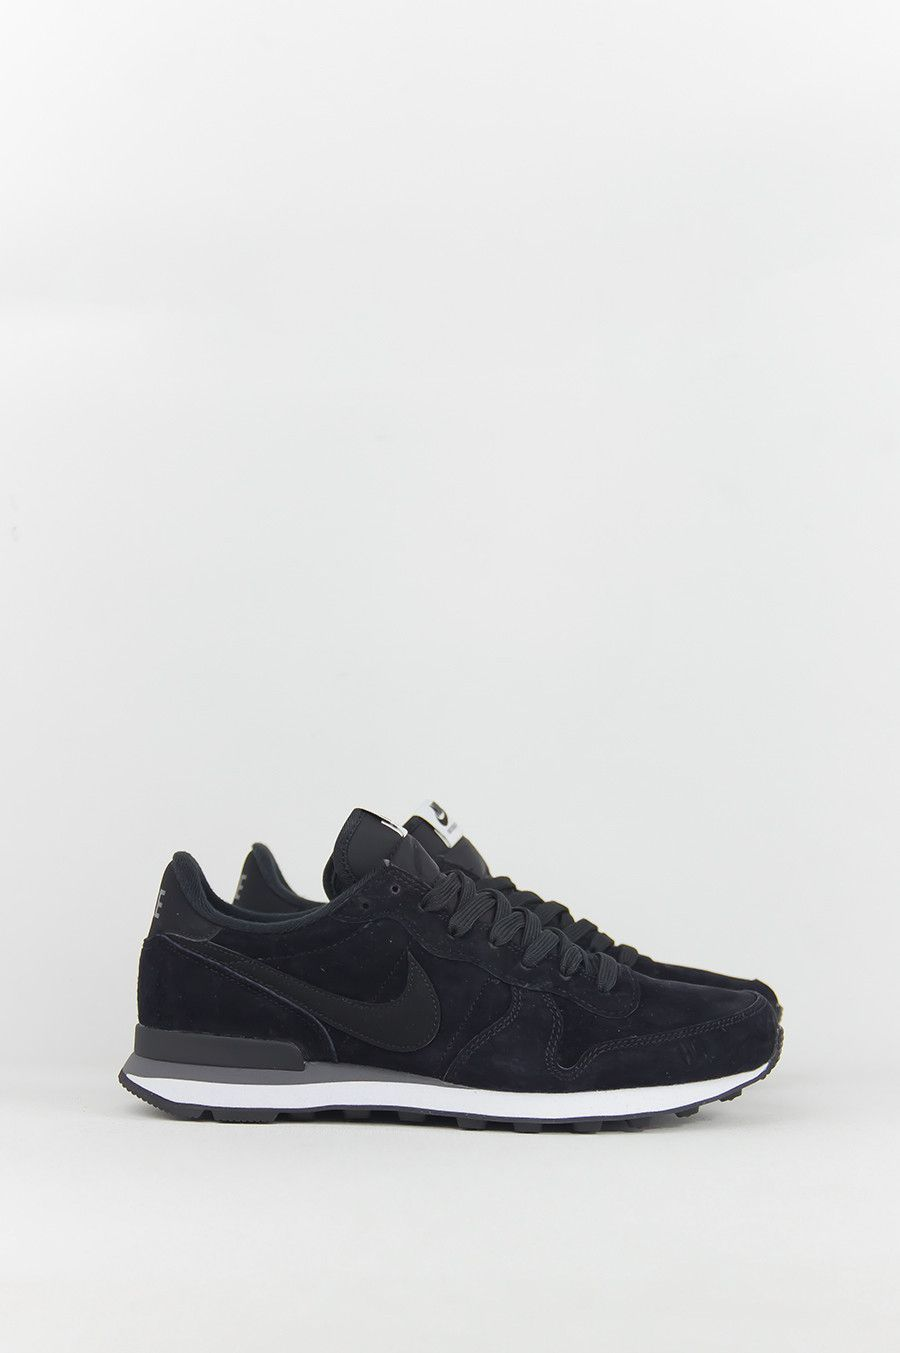 NIKE INTERNATIONALIST BLACK DARK GREY WHITE